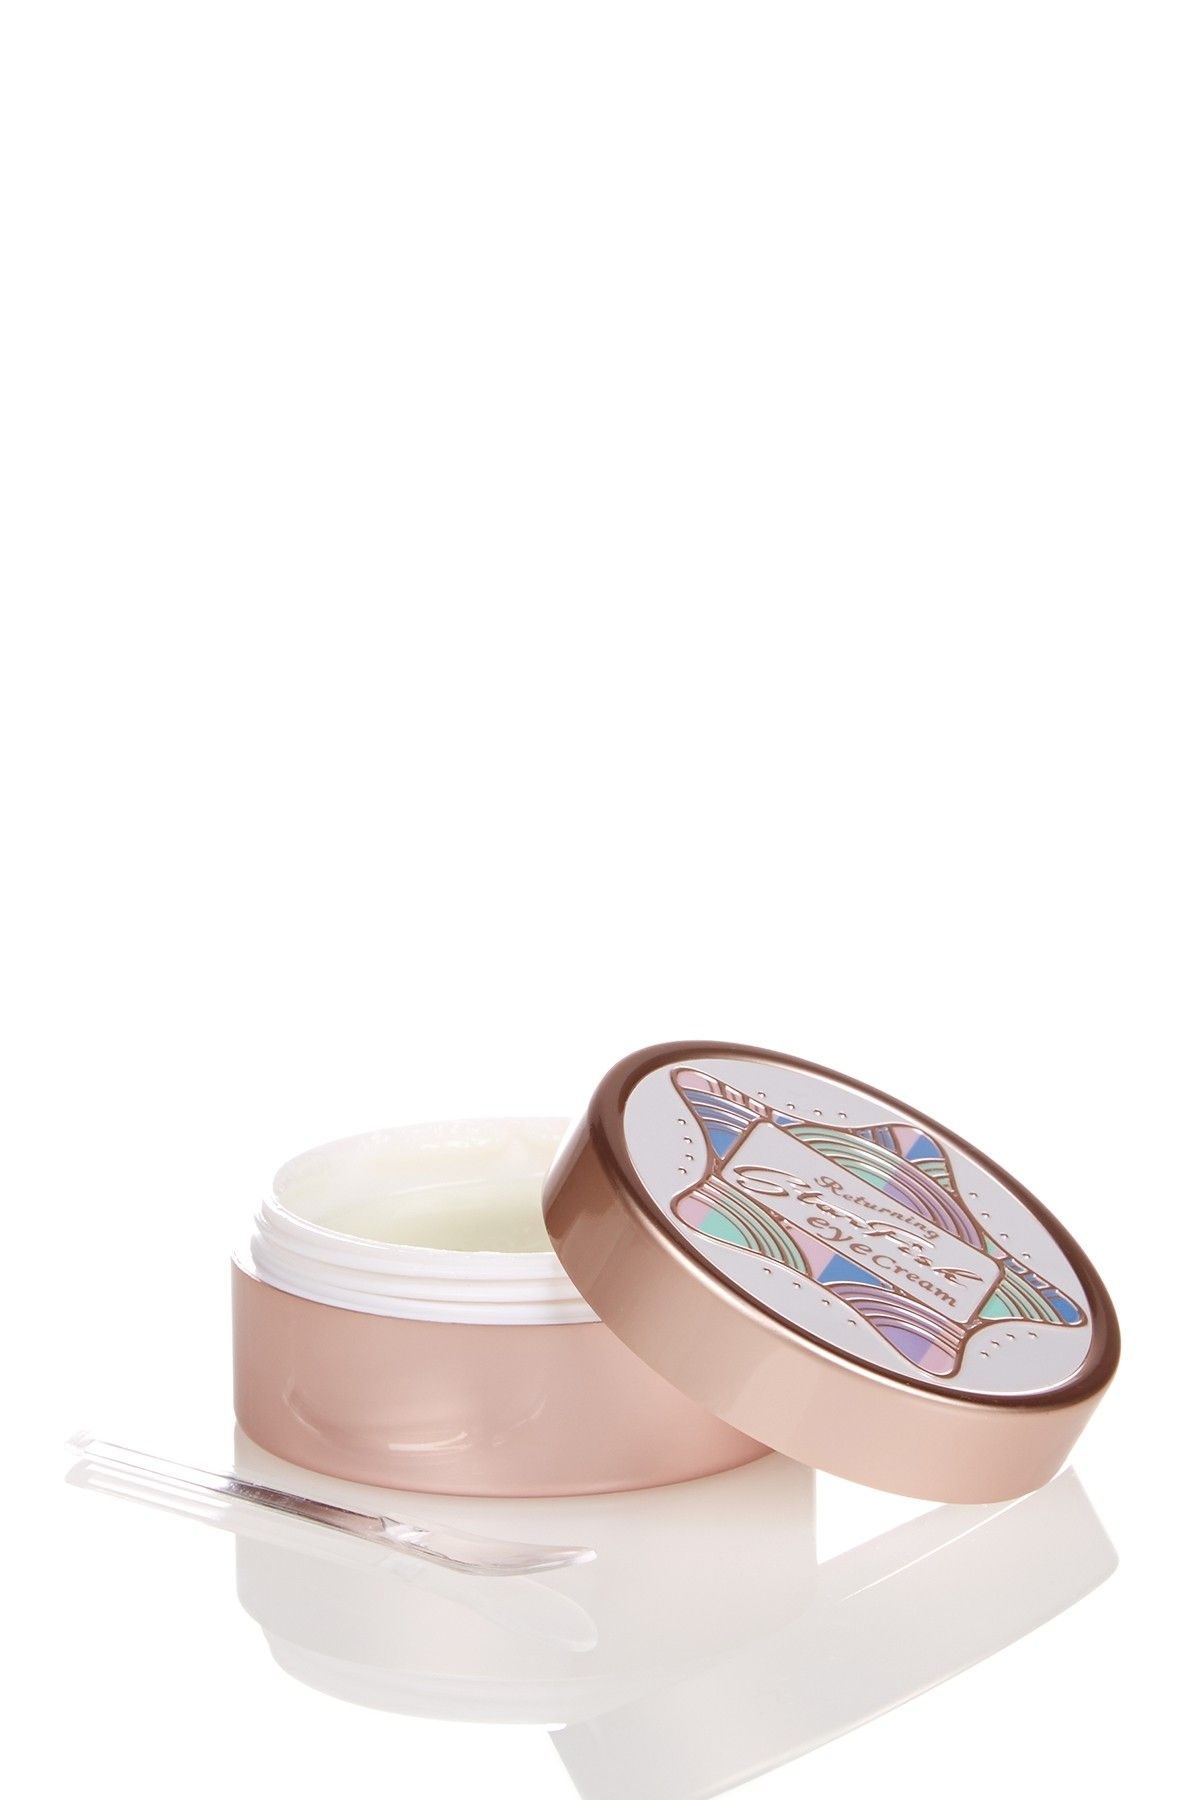 As seen on Hautelook: In love with this Starfish extract Eye Cream from Peach & Lily